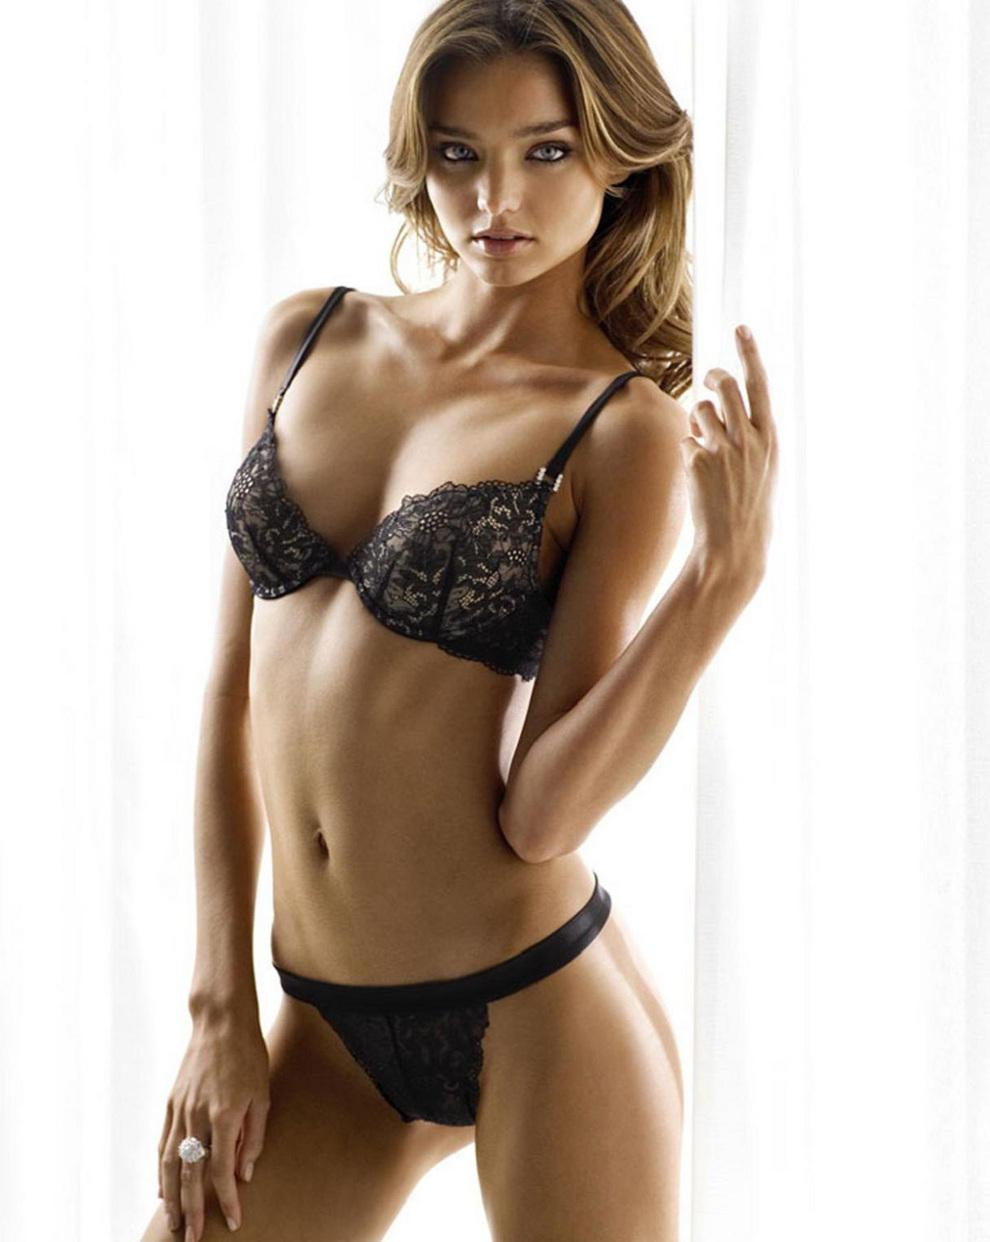 Picture tagged with: Miranda Kerr, Lingerie, Safe for work